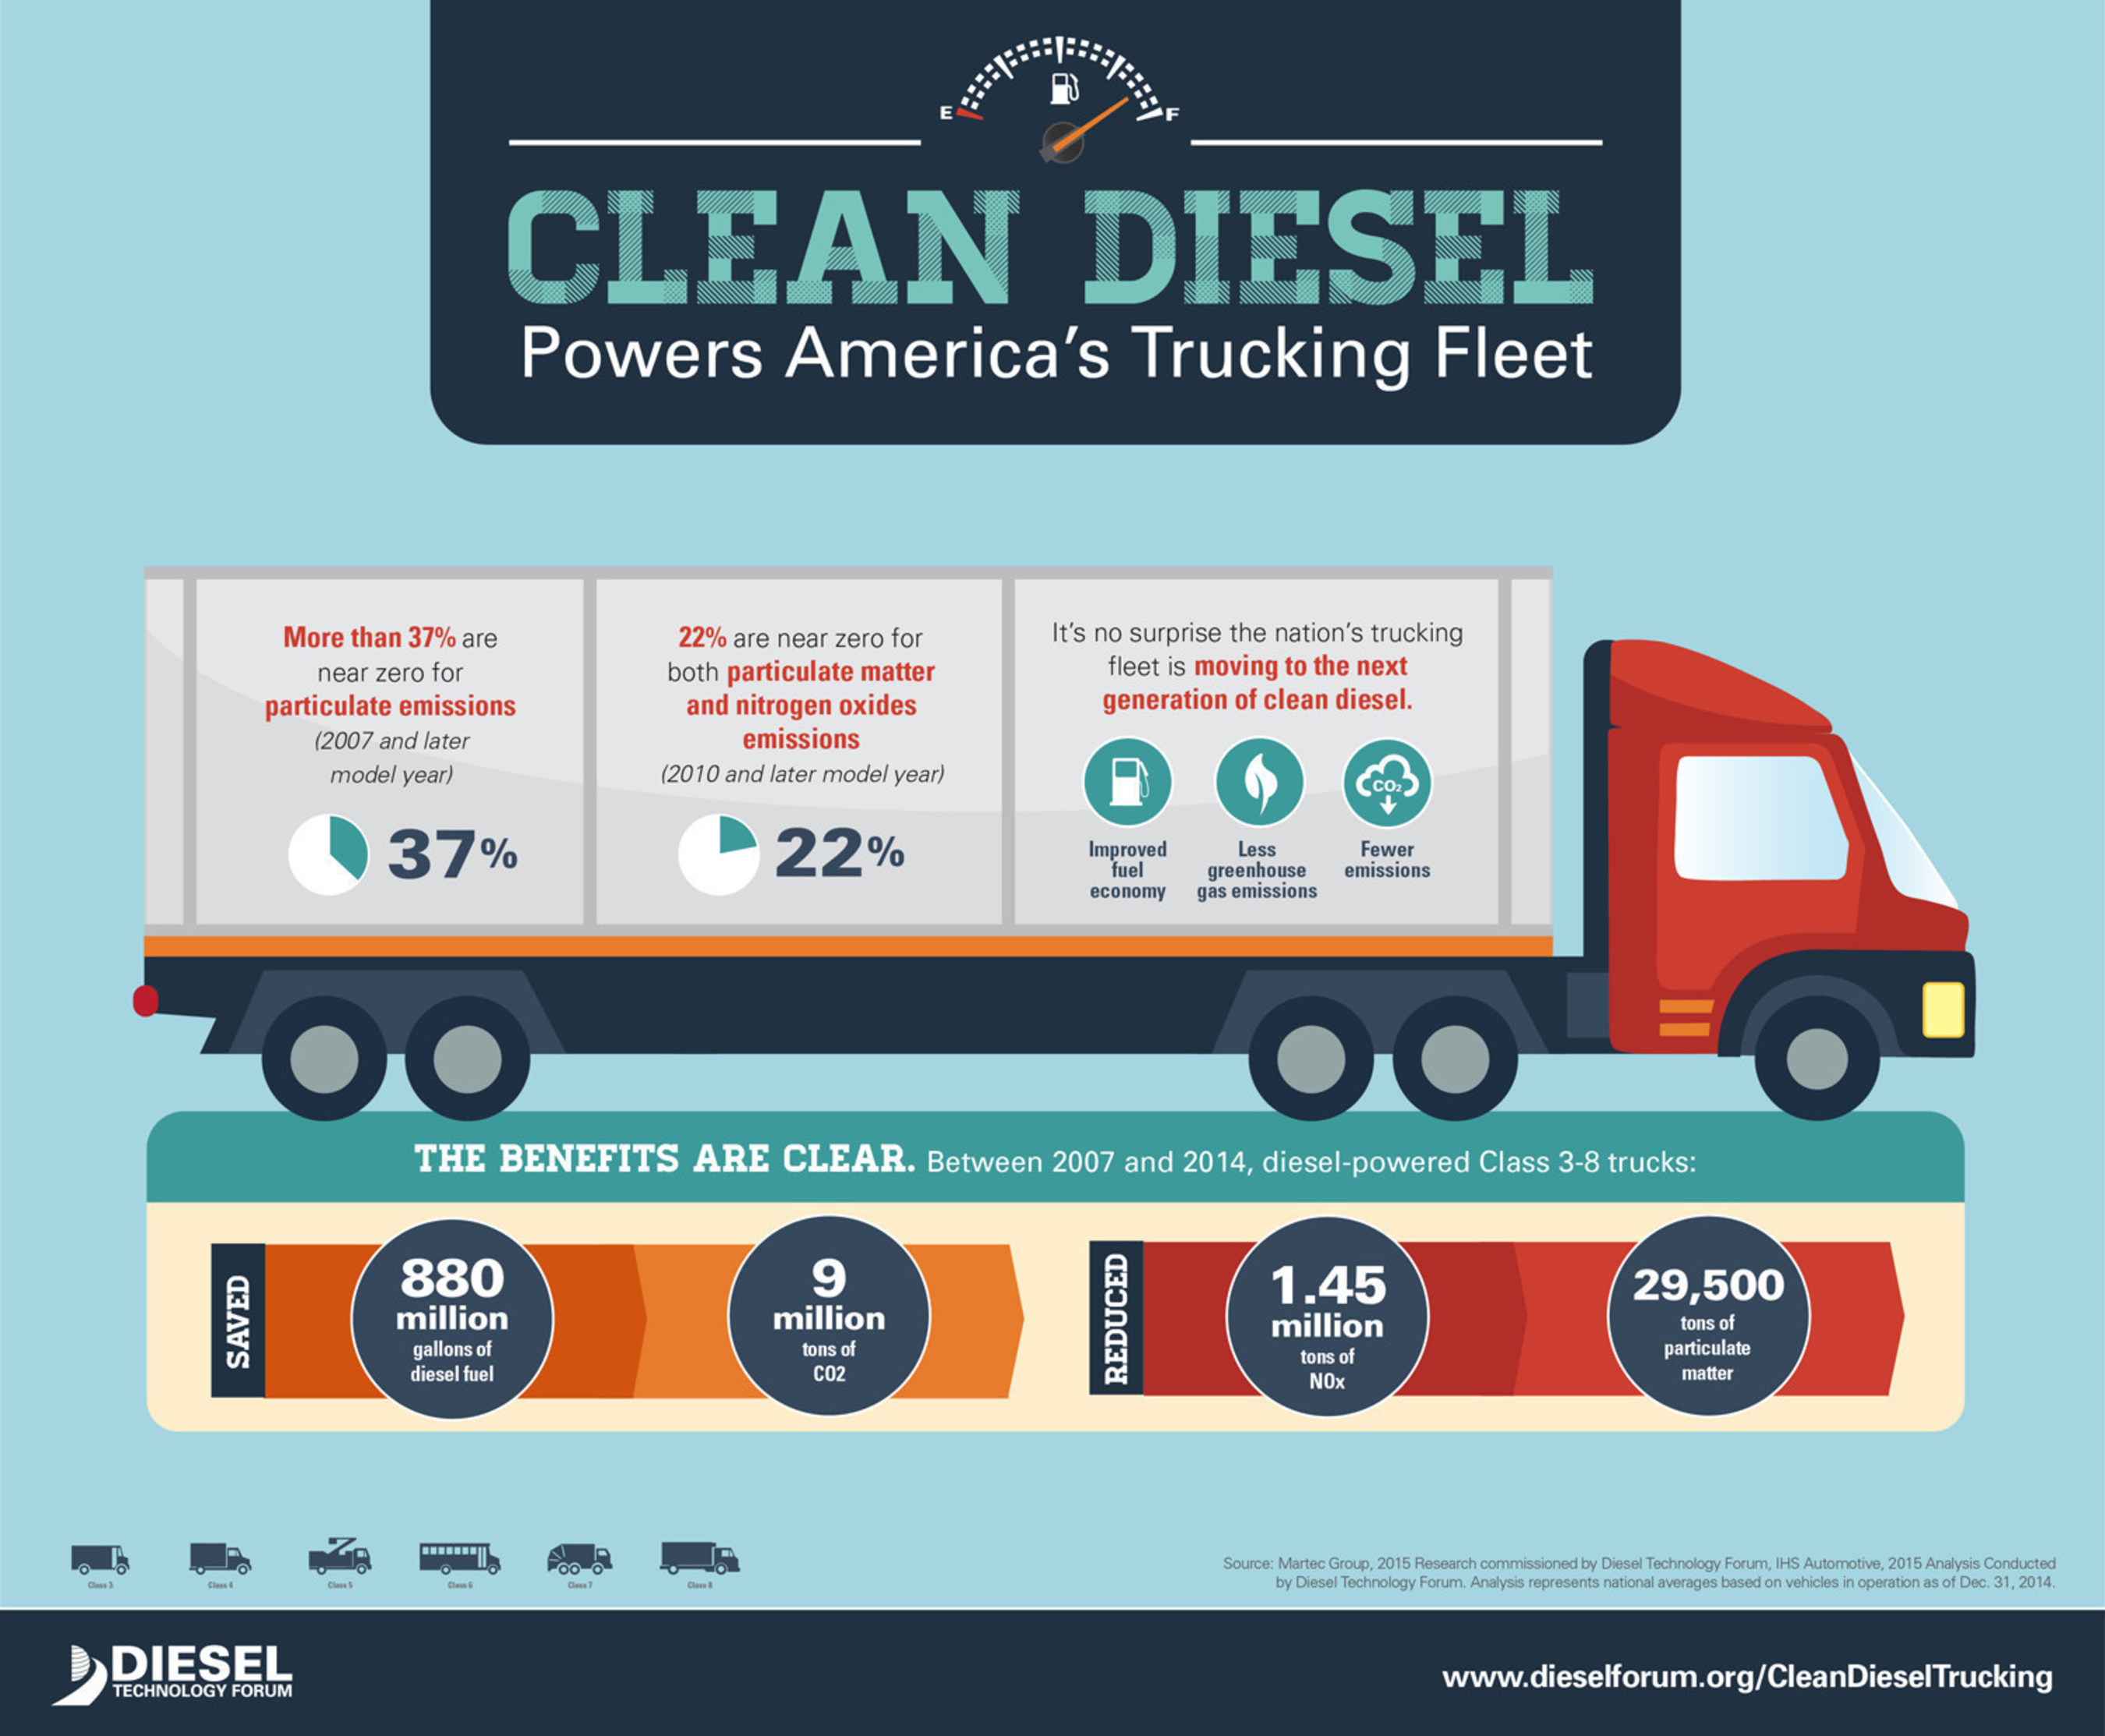 It's no surprise the nation's trucking fleet is moving to the new generation of clean diesel - improved  ...